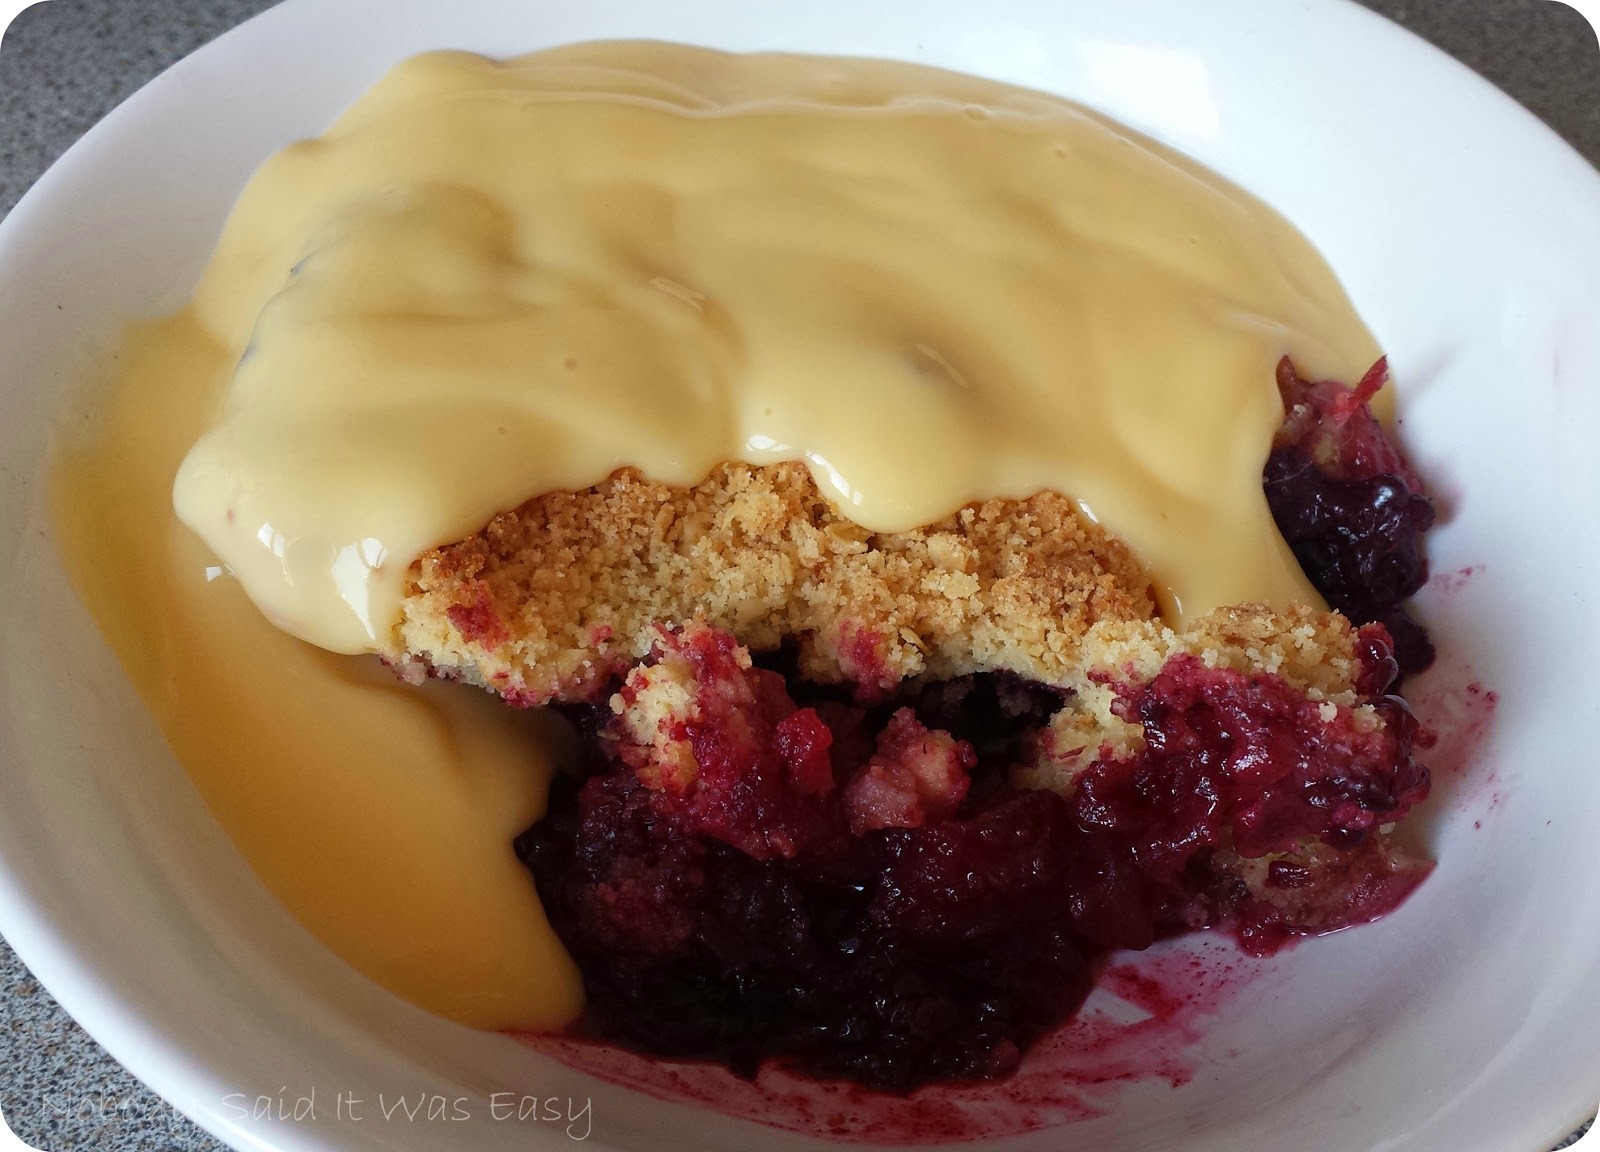 ... Easy : Recipe - Blackberry & apple crumble (#GreatBloggersBakeOff2014